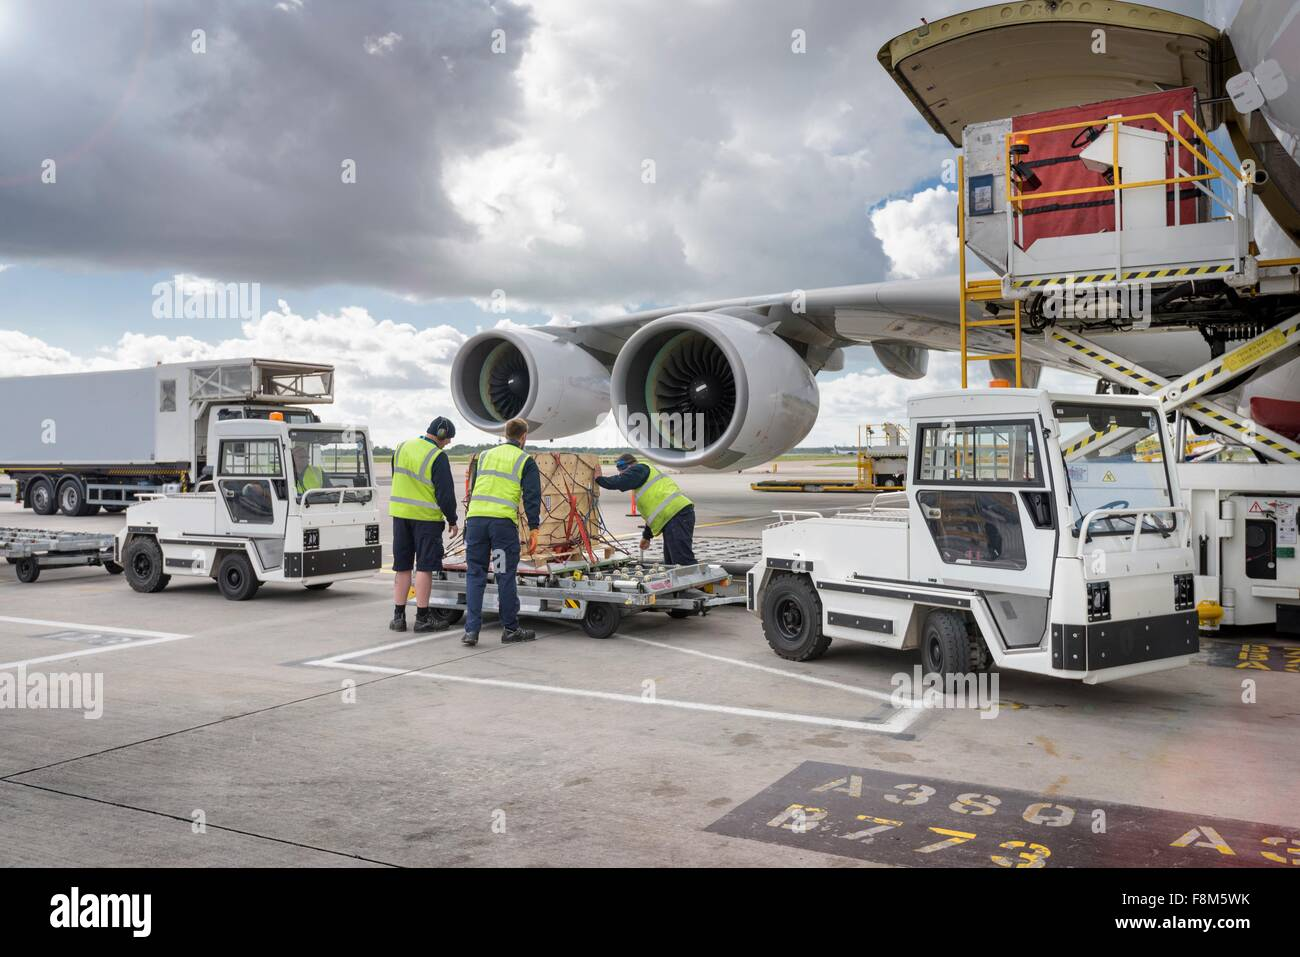 Ground crew loading freight onto A380 aircraft - Stock Image